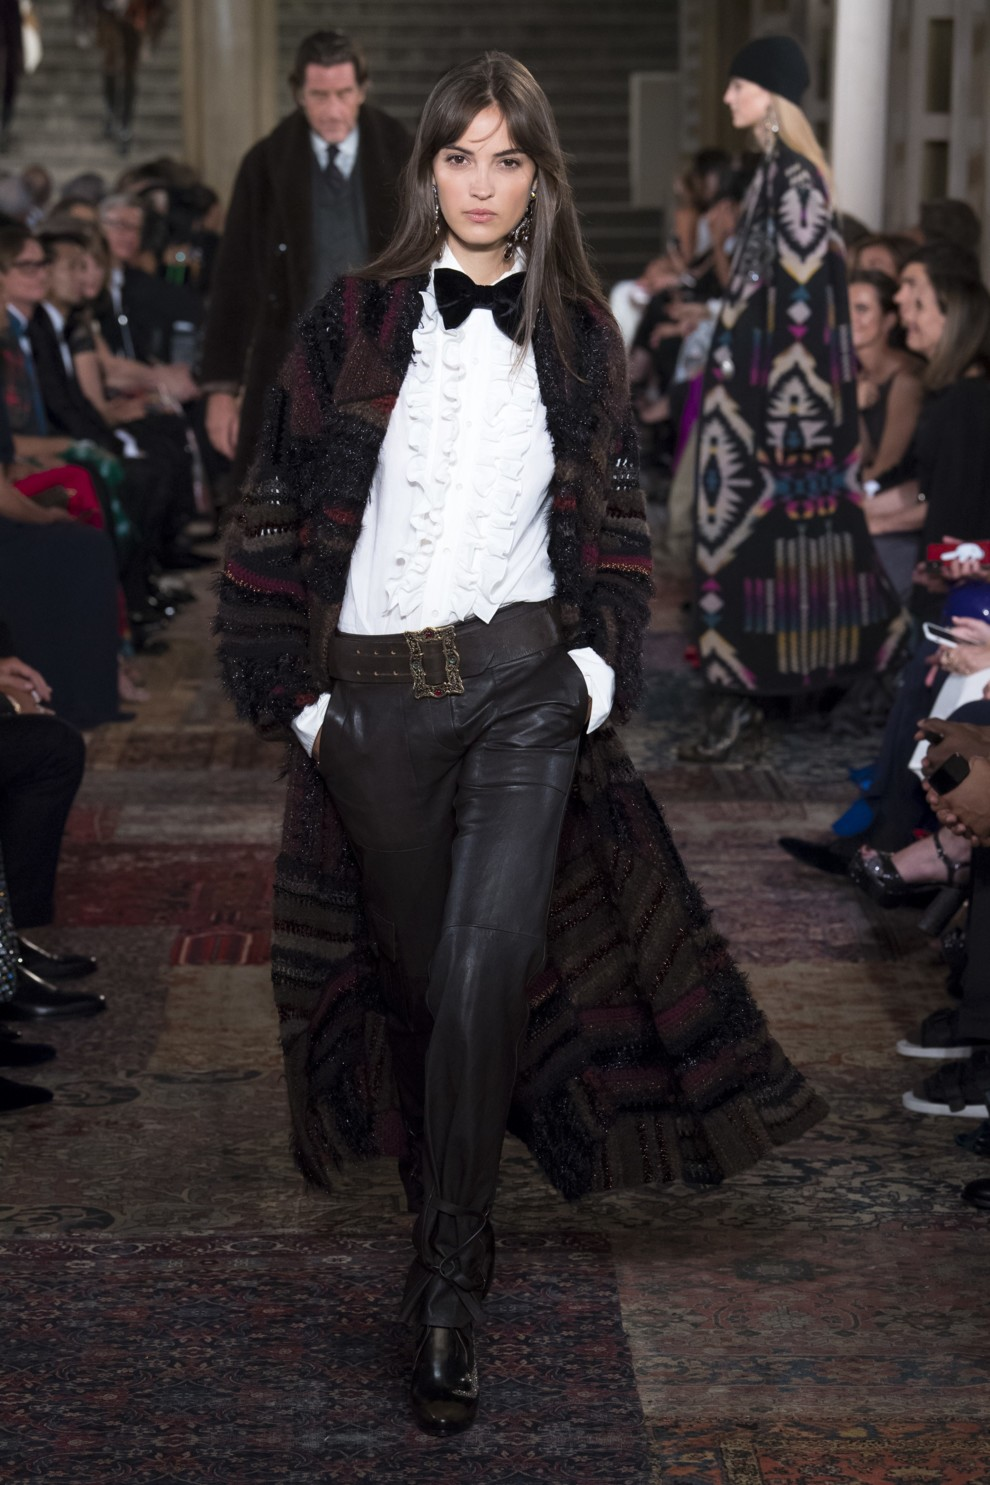 5b93714466c4f - Юбилейный показ Ralph Lauren fall/winter 2018-2019